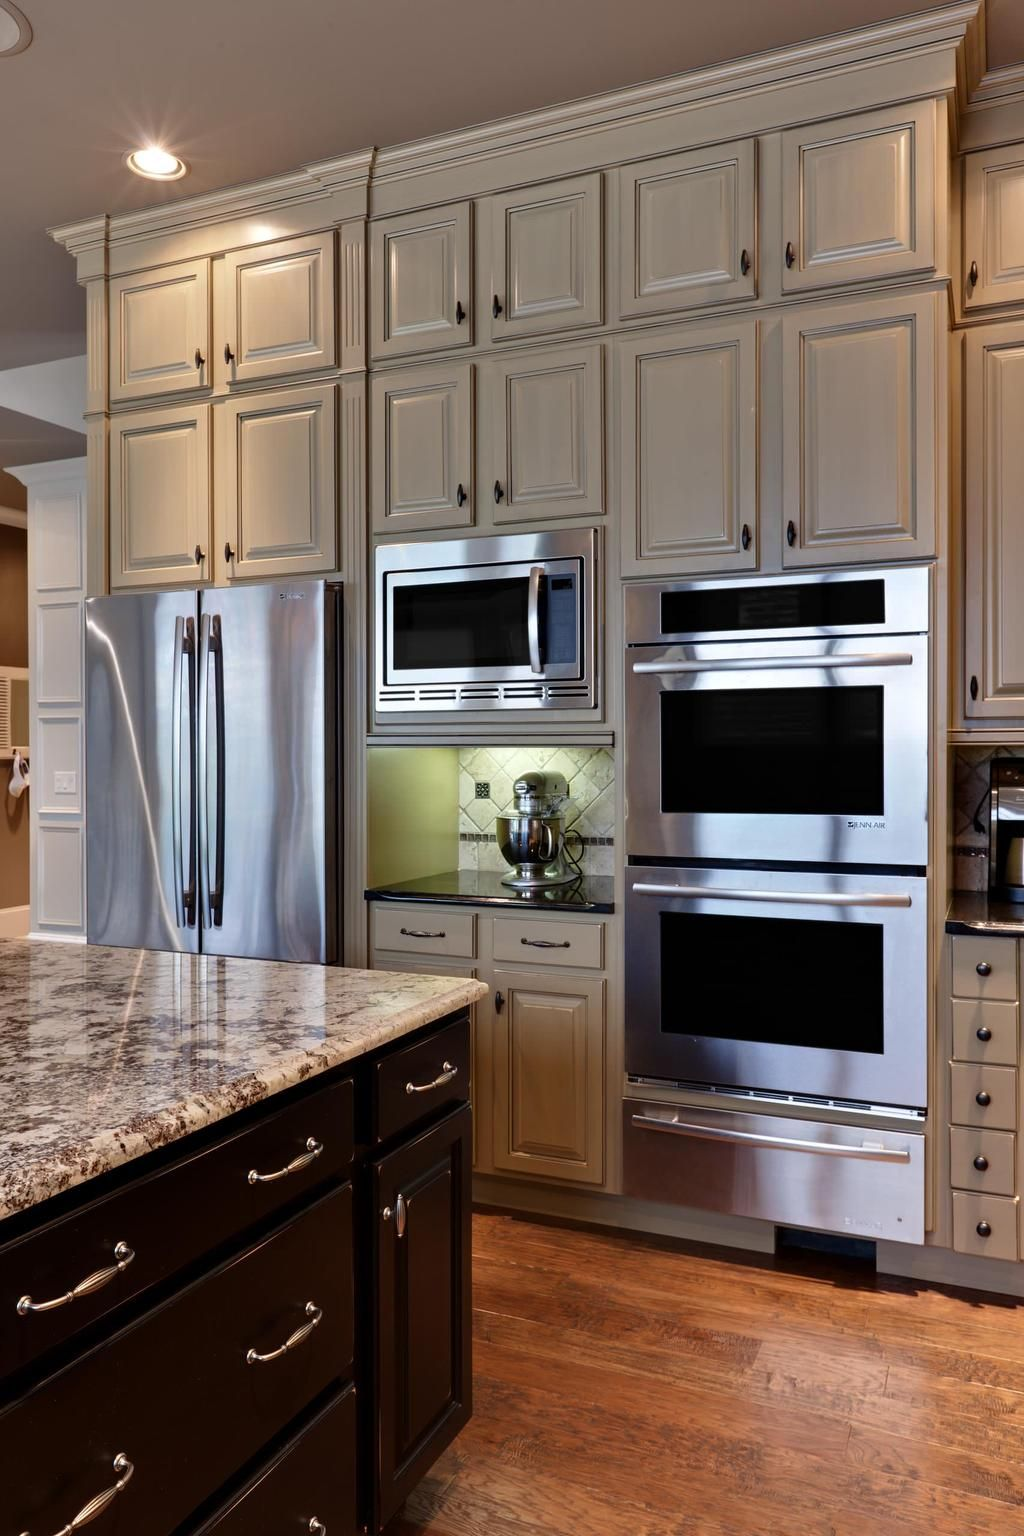 Kitchen Double Ovens Plus Microwave Traditional Kitchen Remodel Kitchen Cabinet Design New Kitchen Cabinets